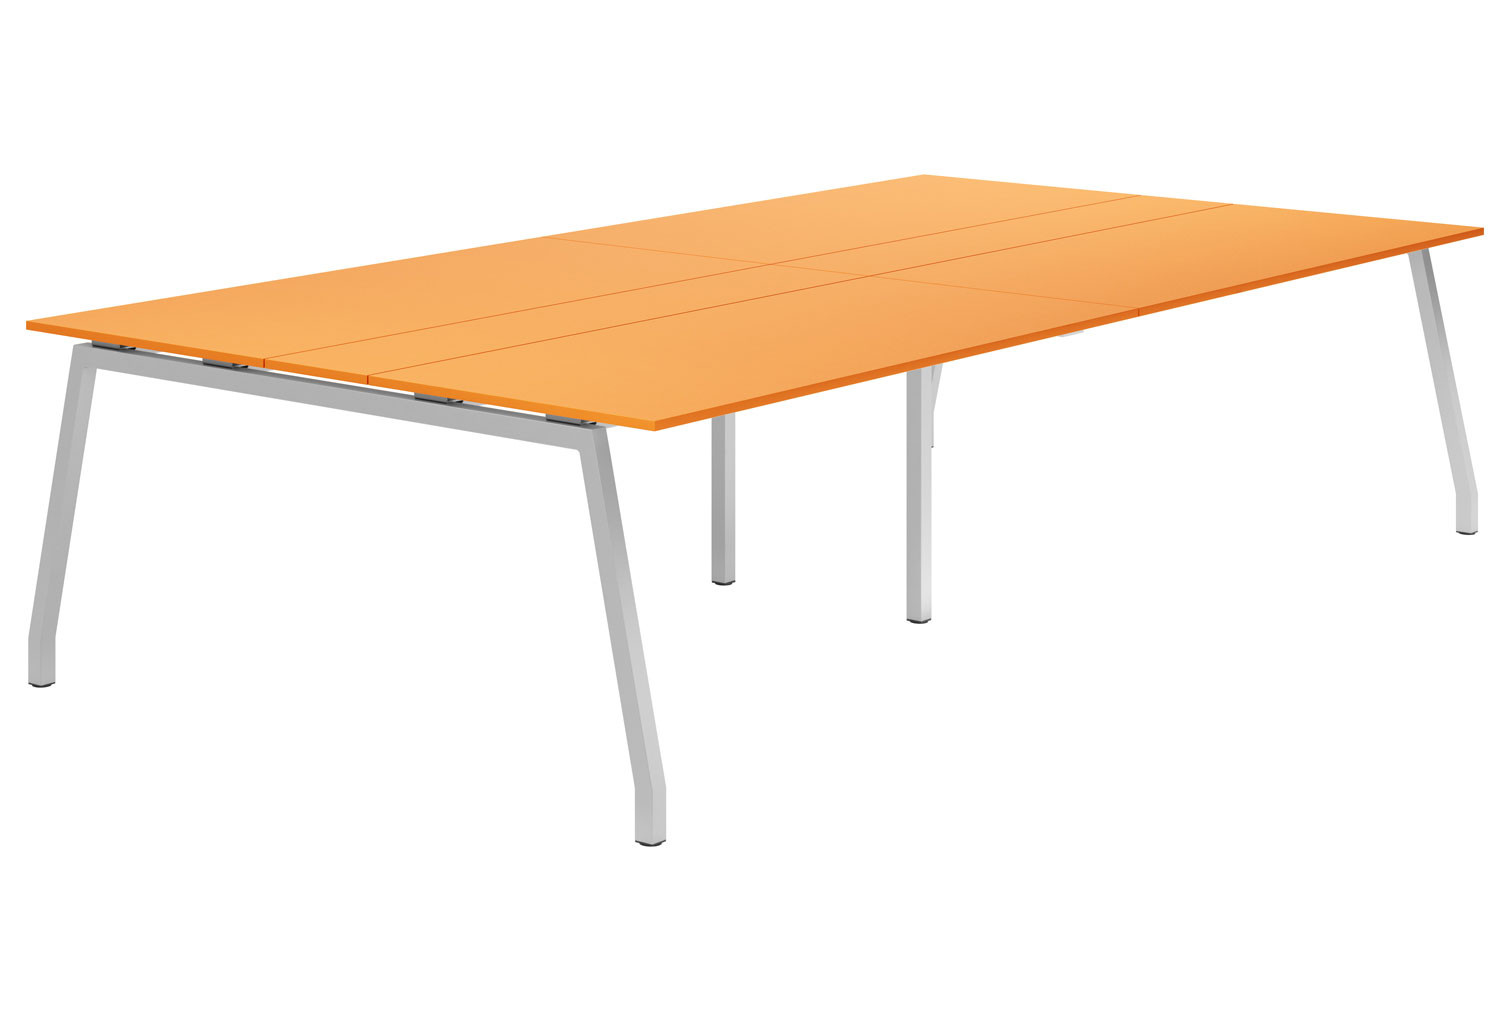 Campos A-Frame 10-12 Person Meeting Table (Orange)